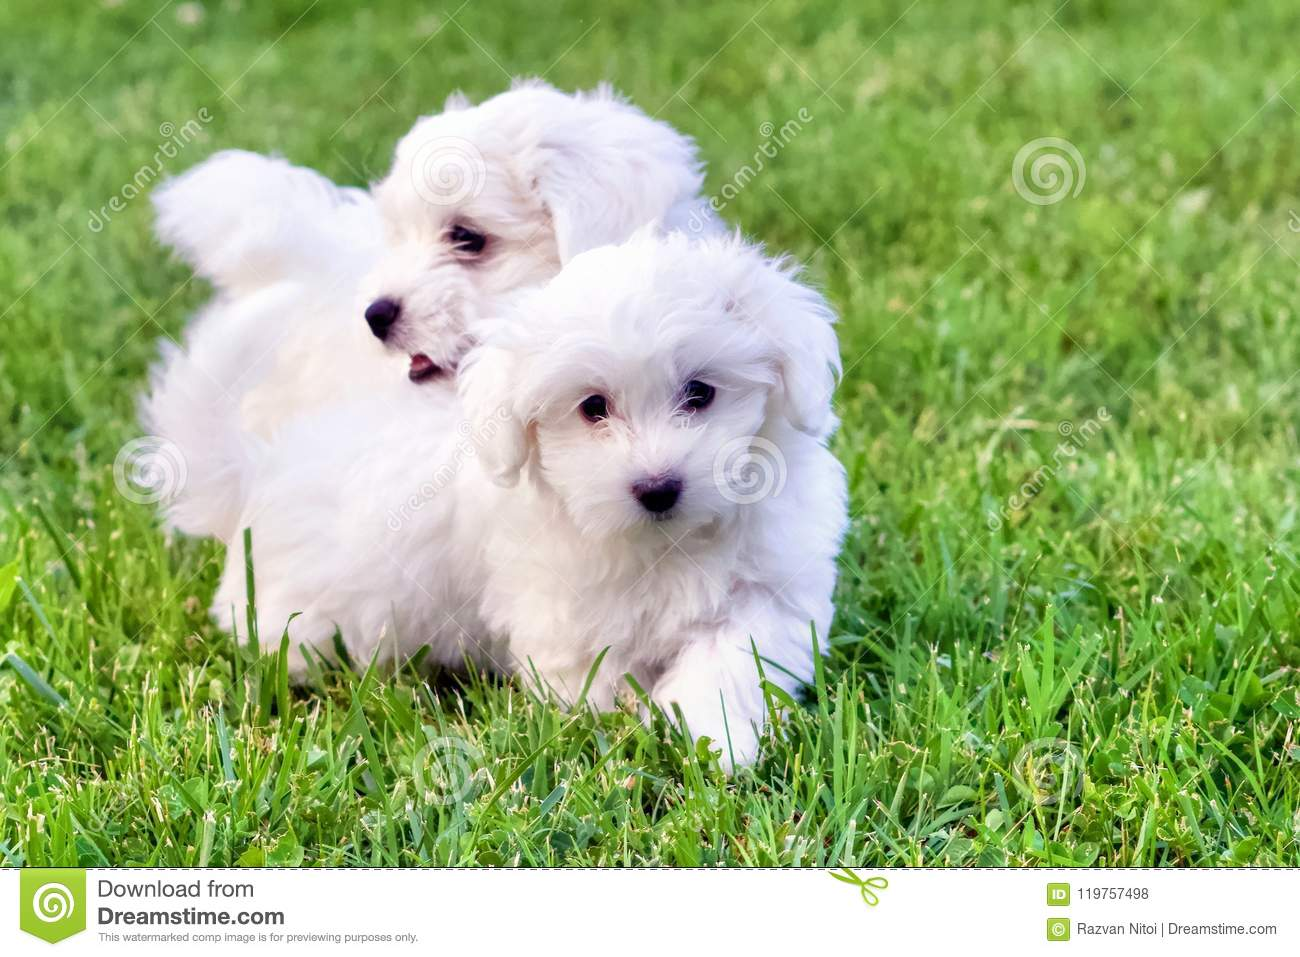 Cute White Bichon Puppies Playing In Green Grass Stock Photo Image